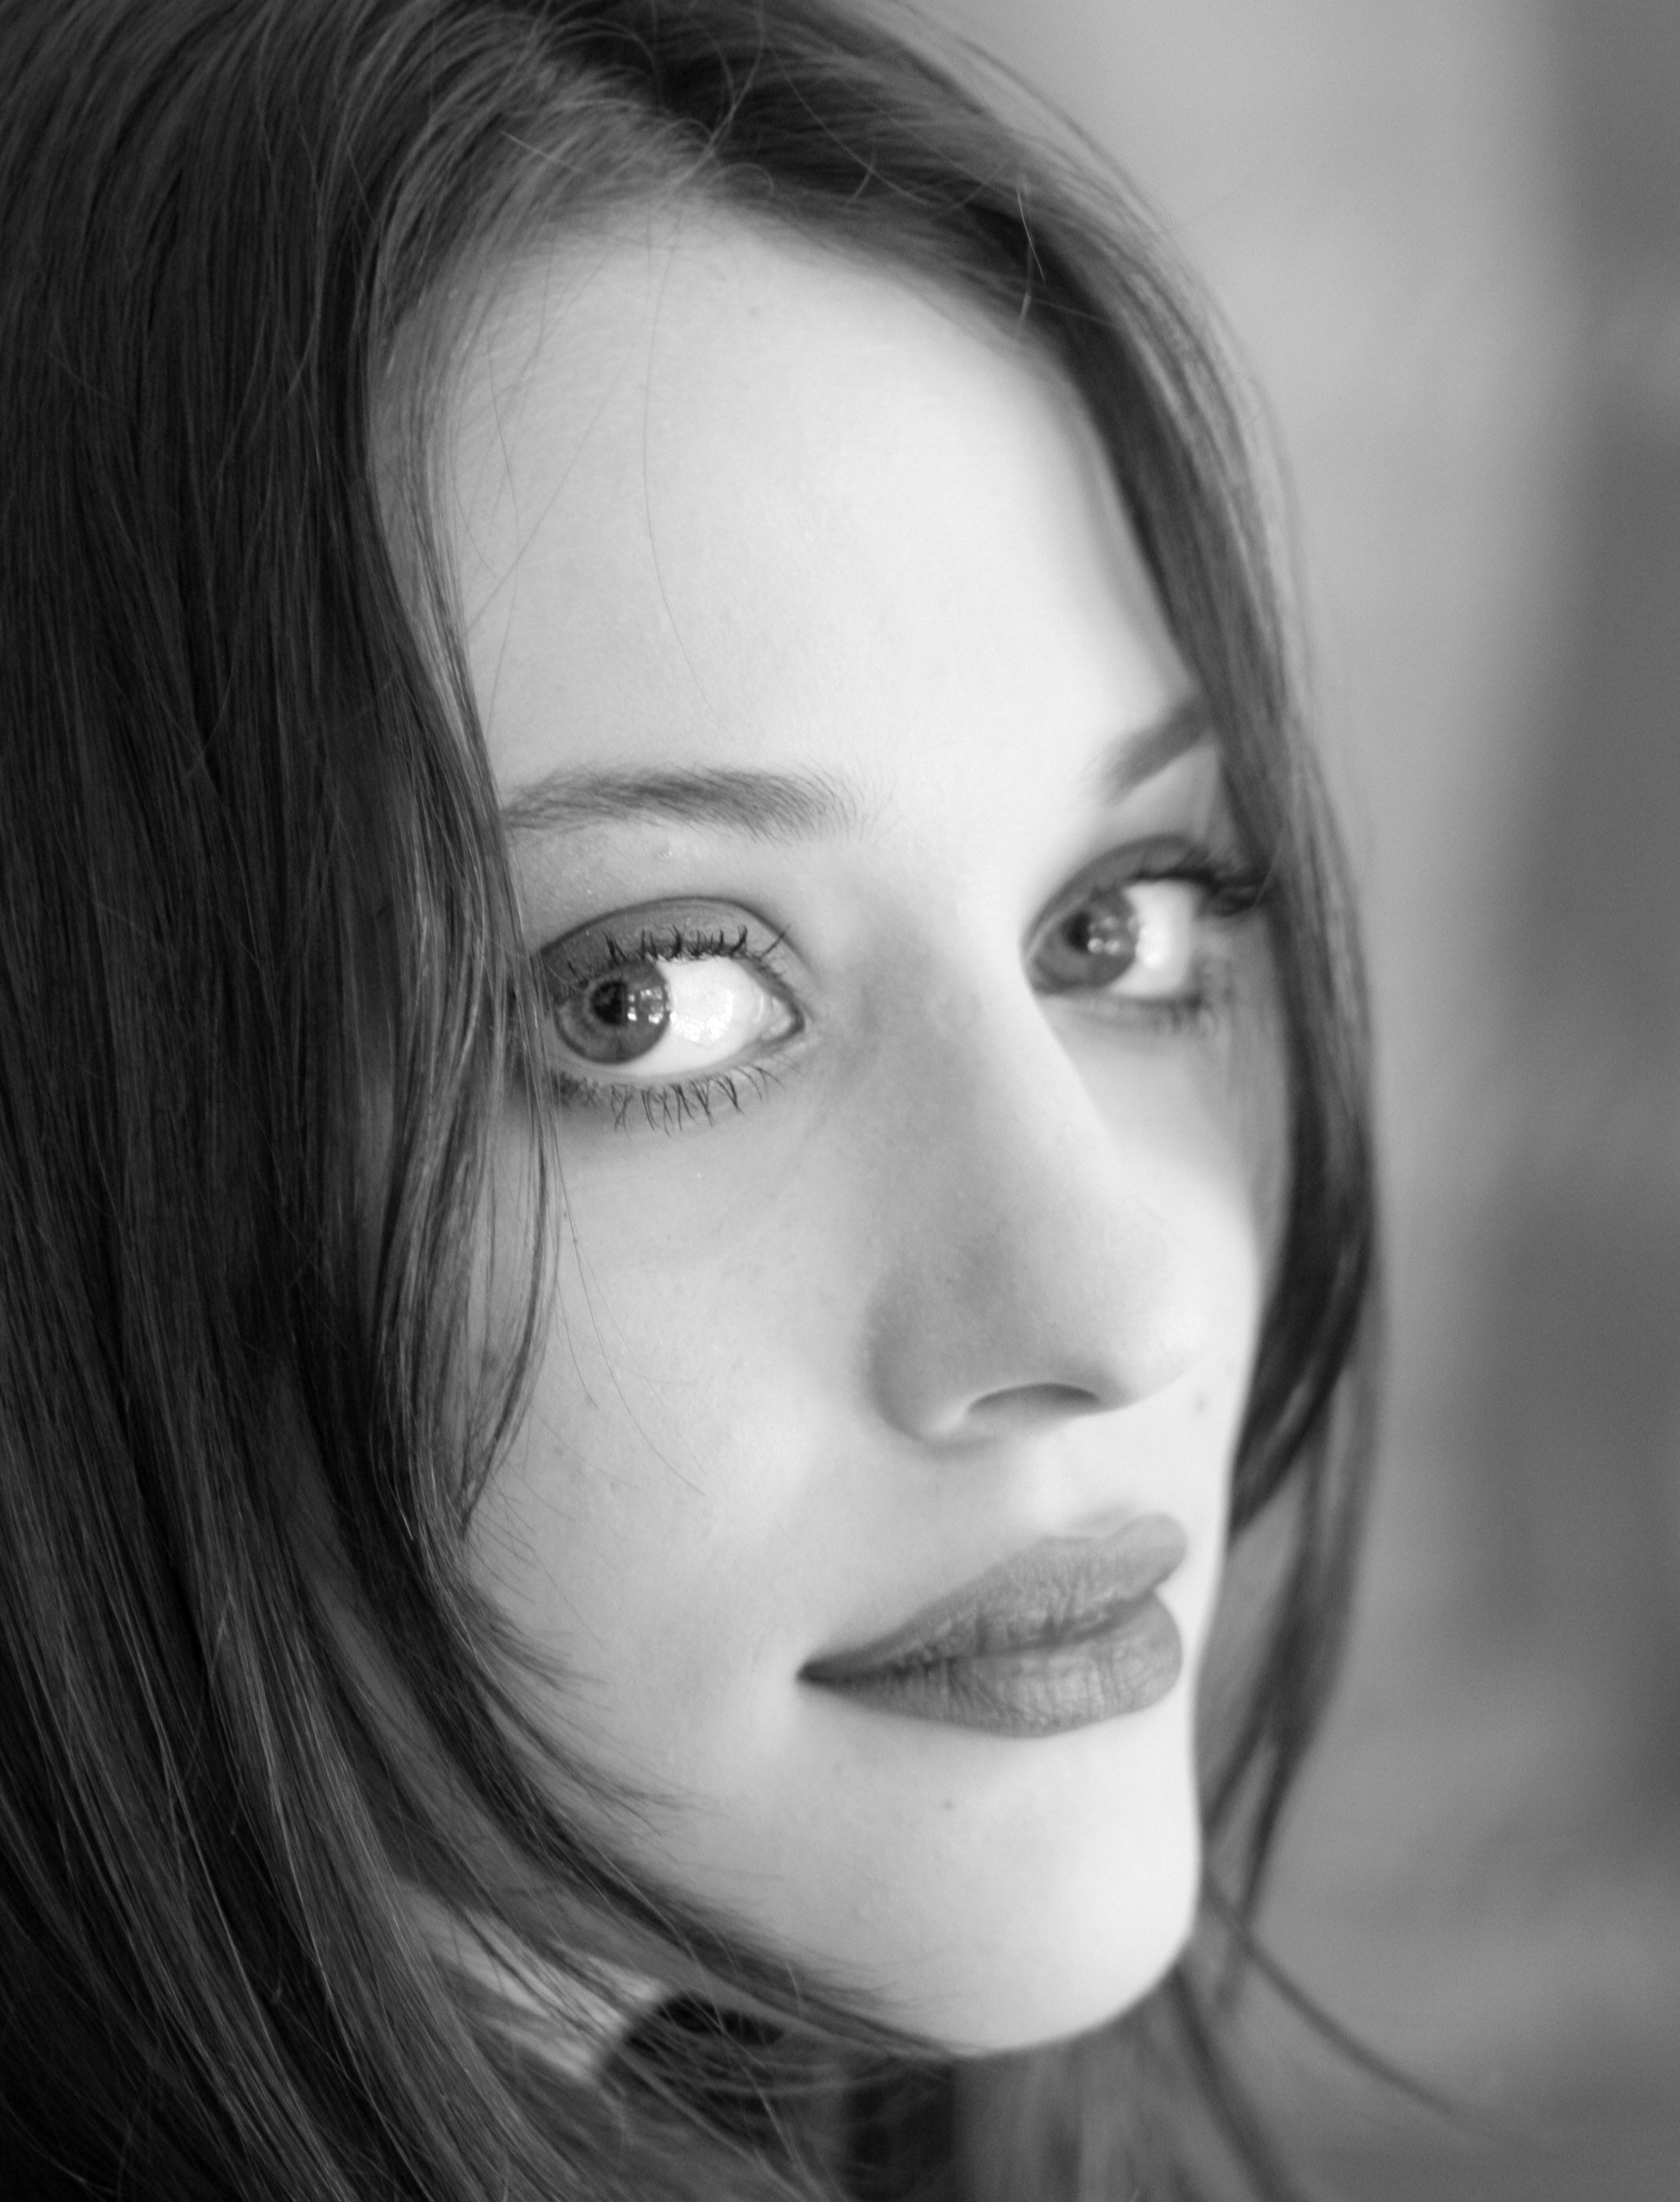 Kat Dennings - Images Gallery